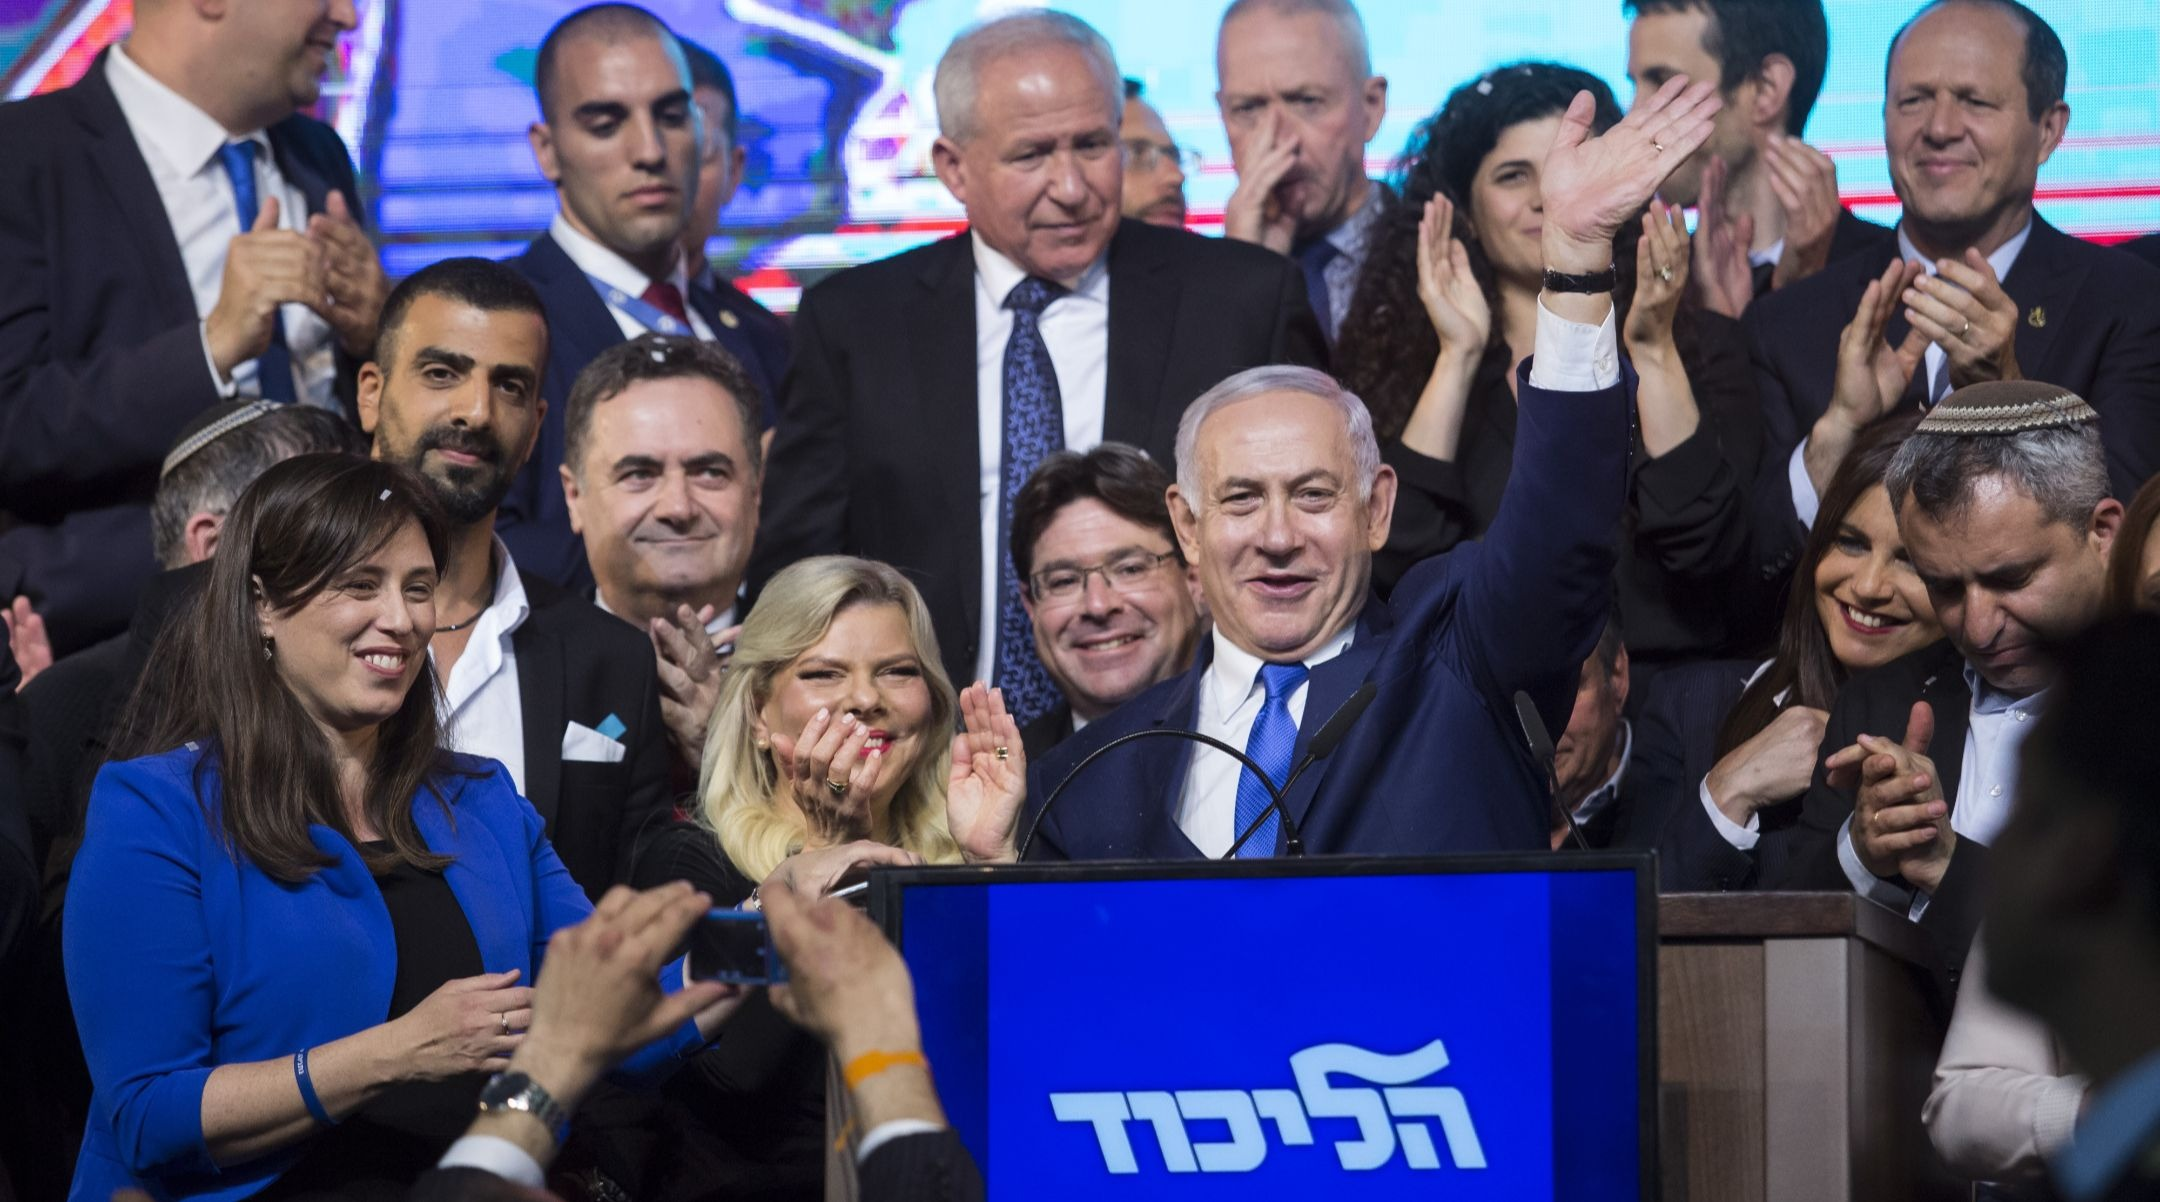 Benjamin Netanyahu files police complaint over death threats against him and his family